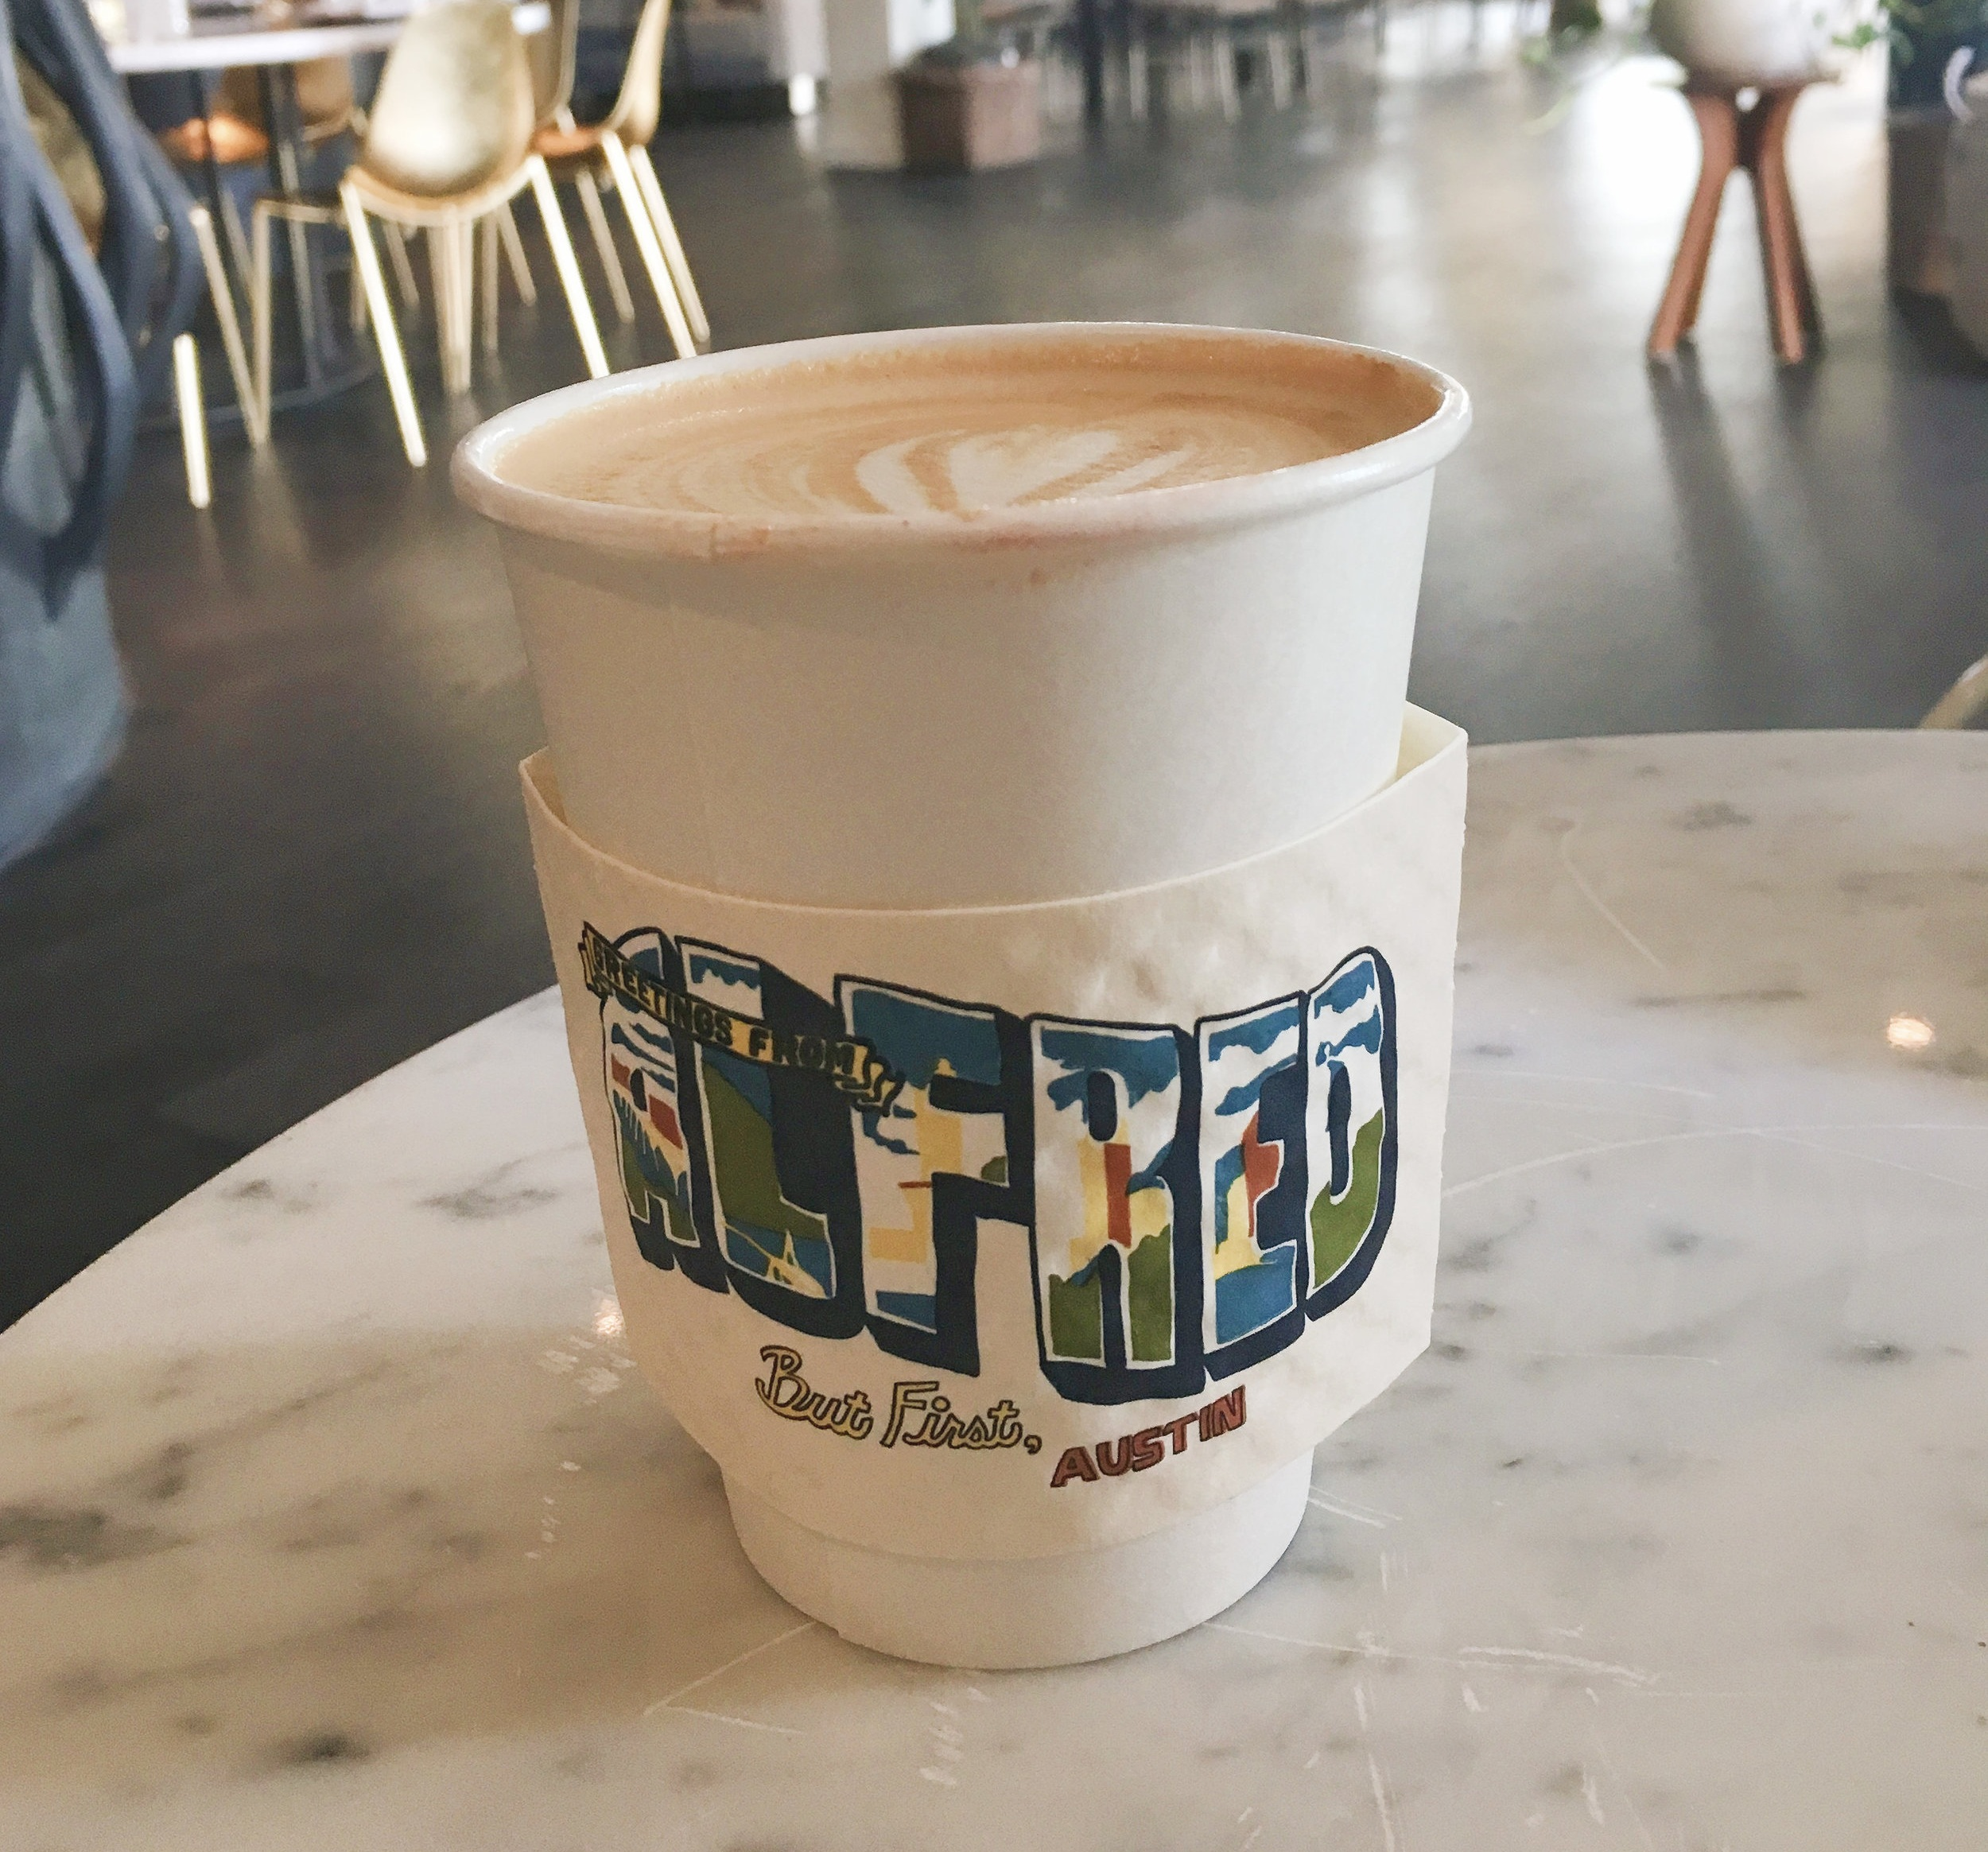 But first….Alfred Coffee! Located inside the beautiful The Line hotel.